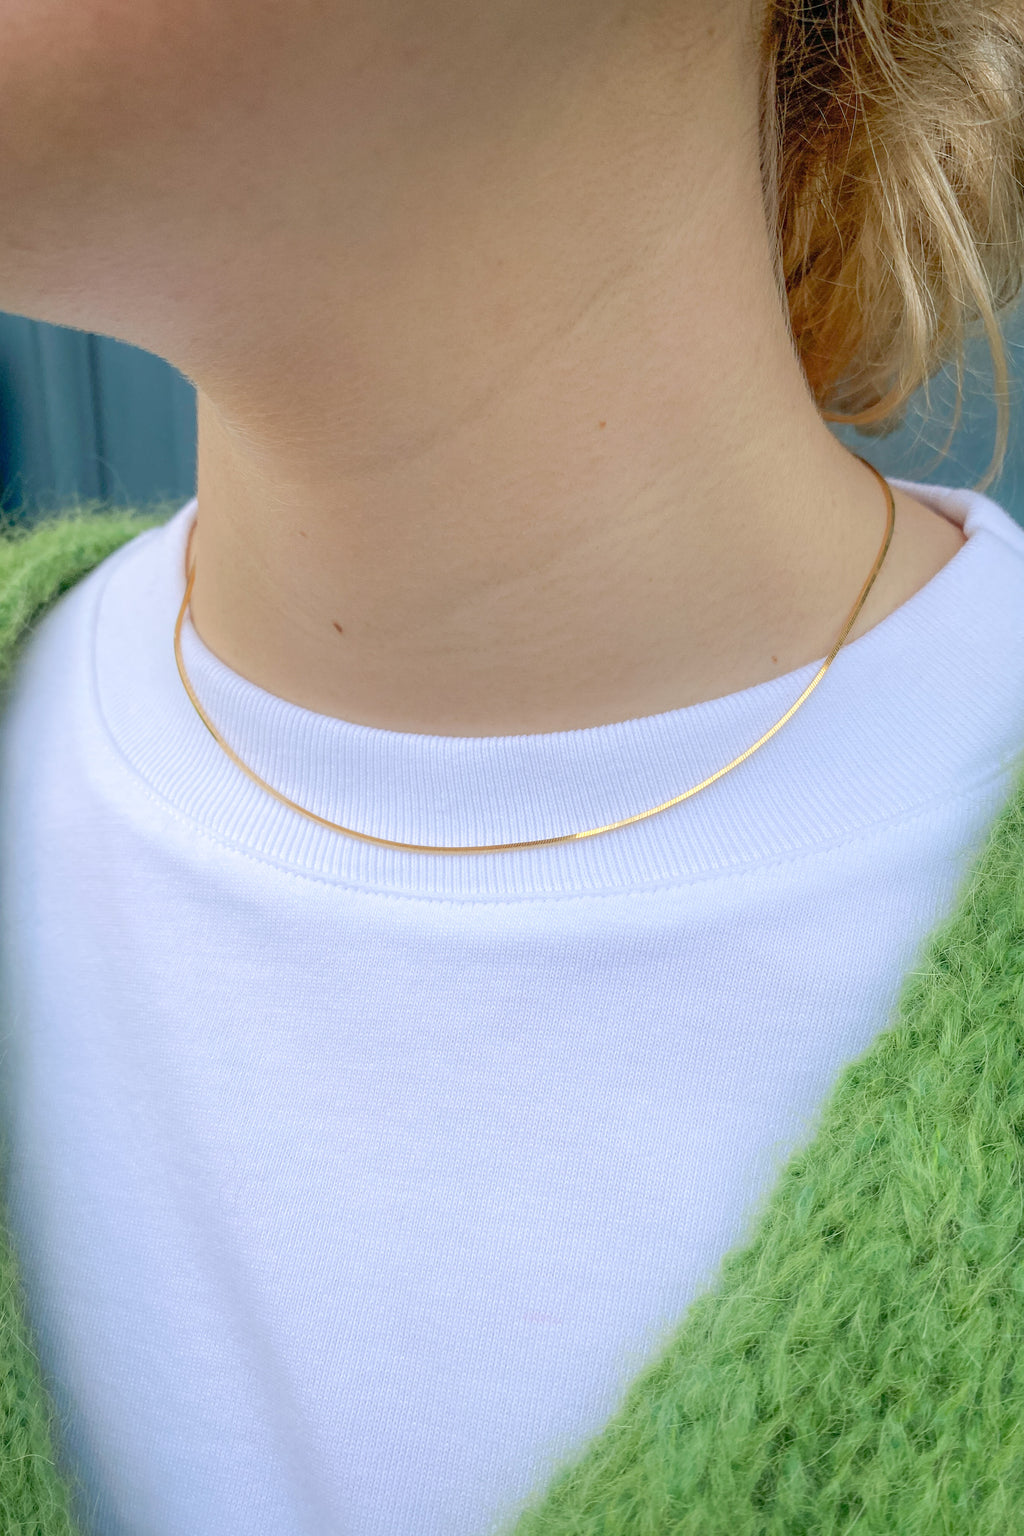 Shyla Thin Snake Chain Necklace - The Mercantile London